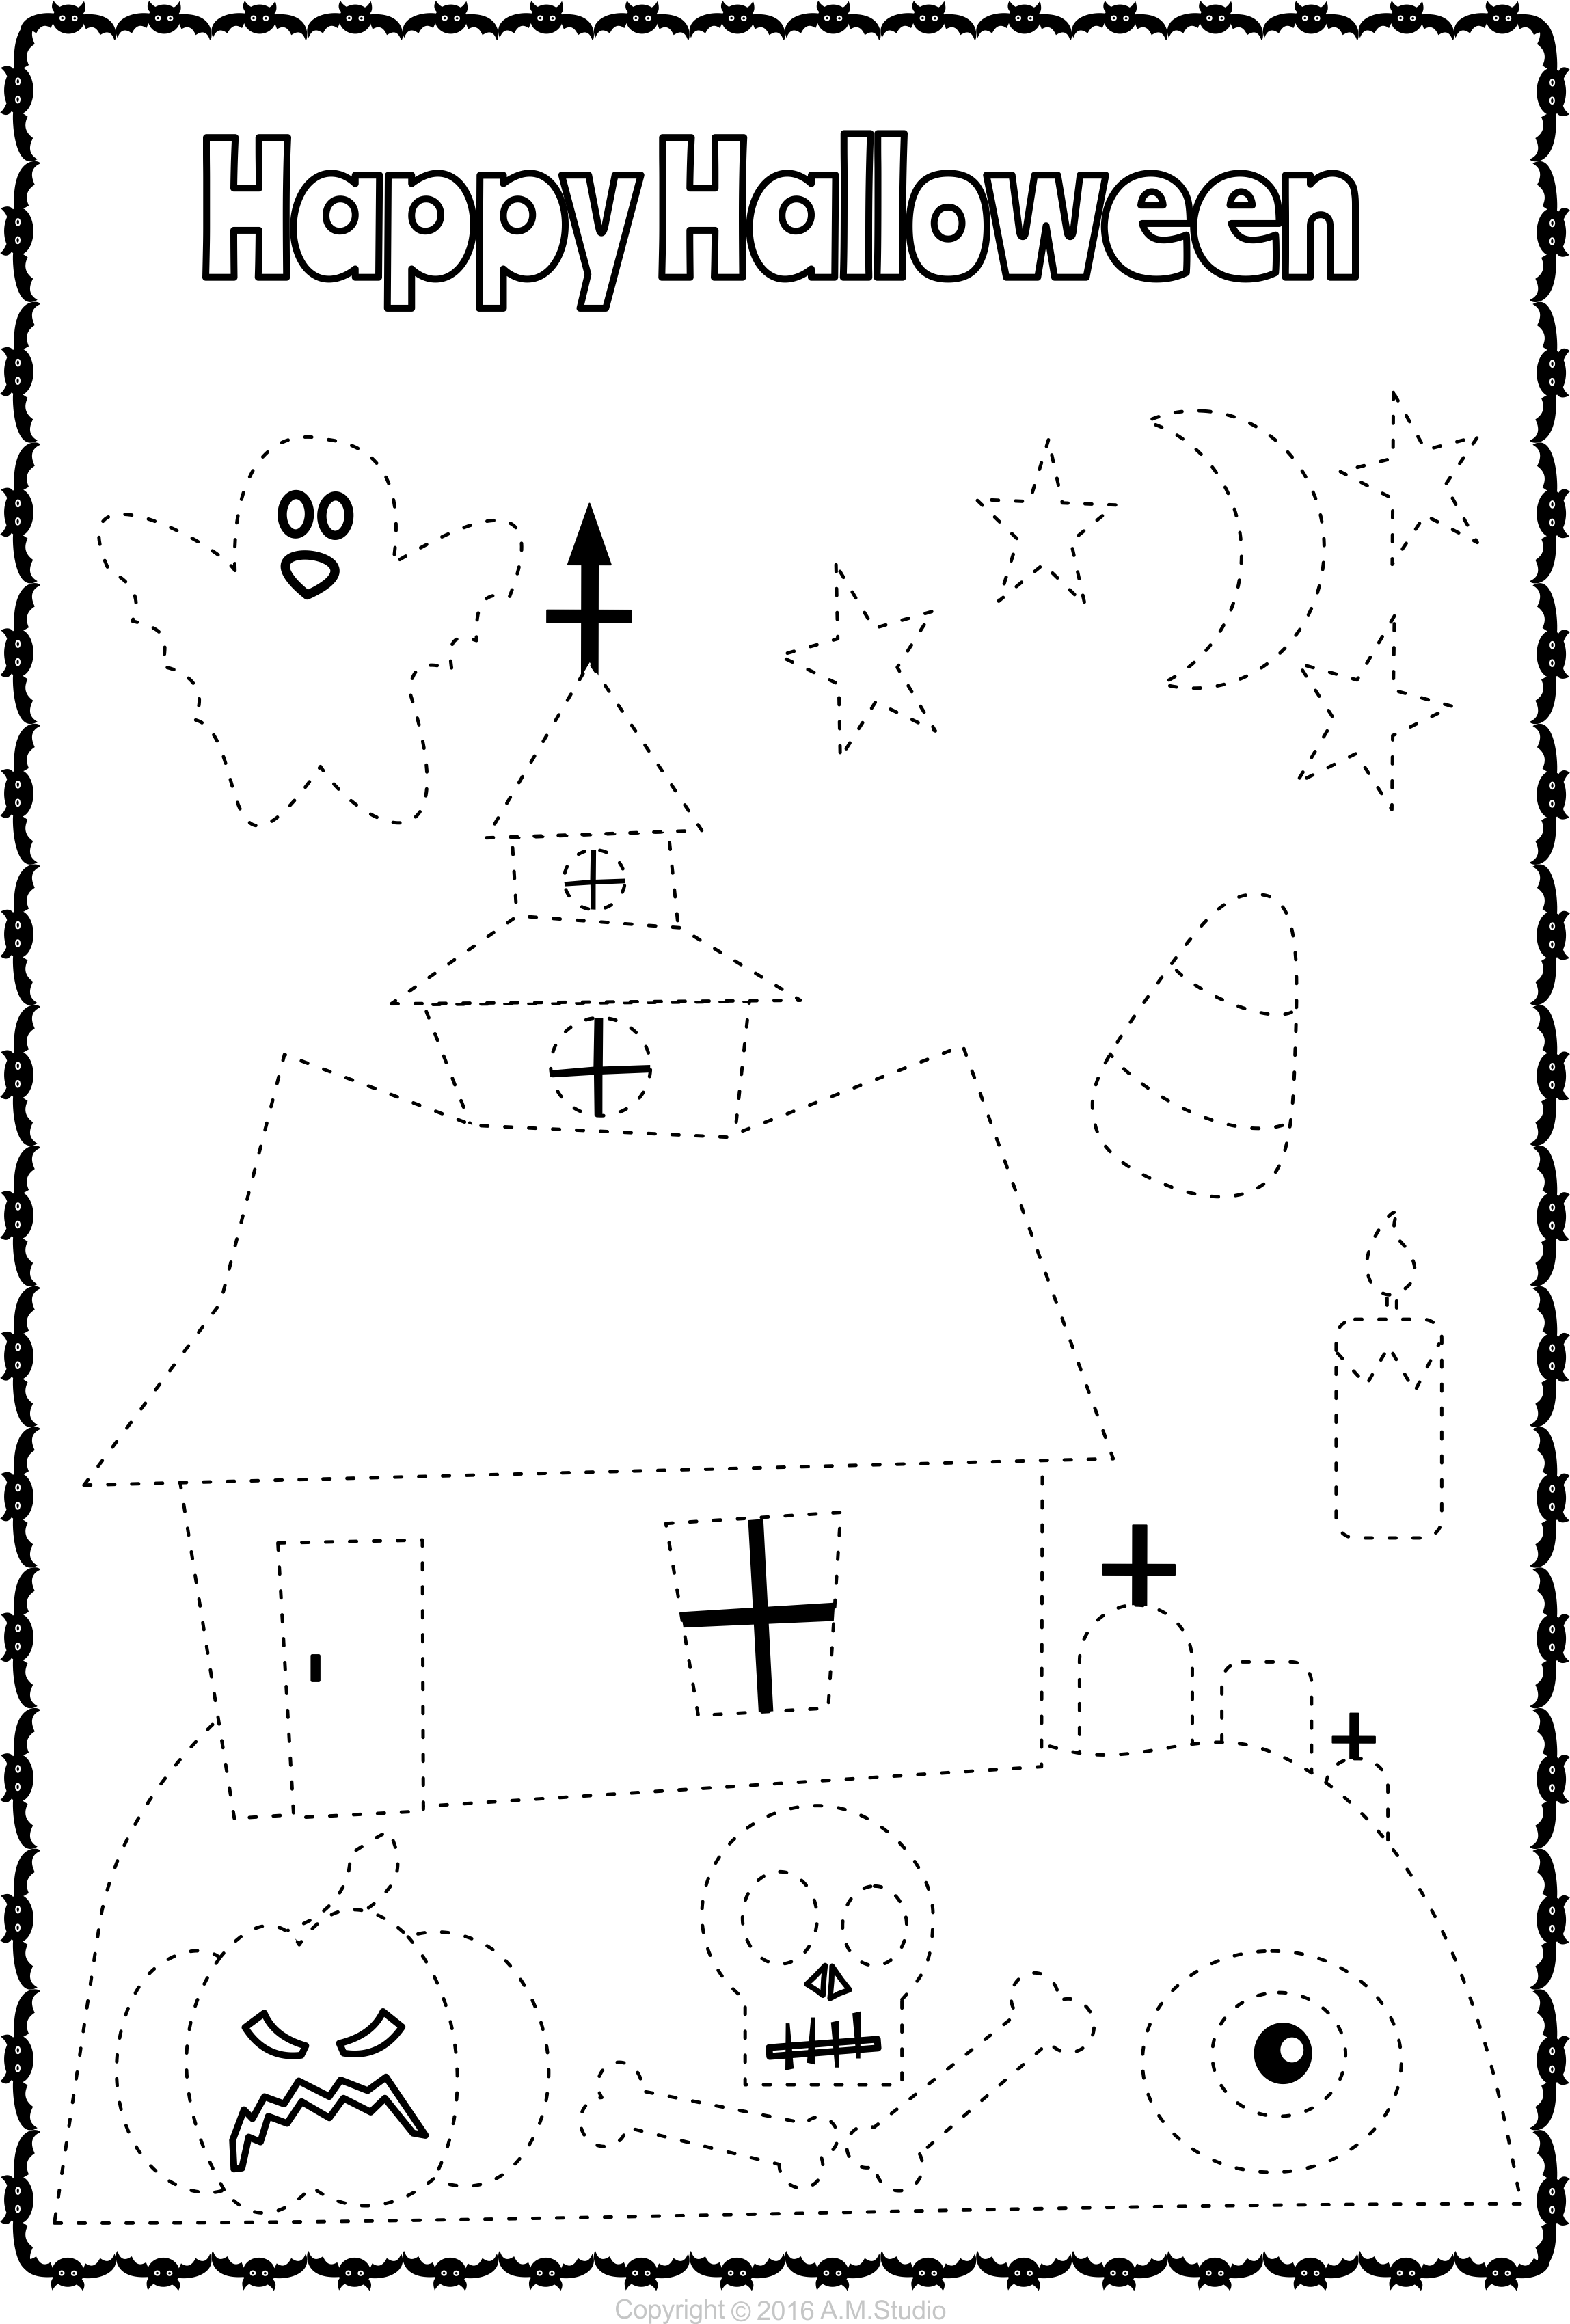 13 Halloween Themed Trace And Color Pages For Kids Halloween Craft Activities Halloween Worksheets Easy Halloween Crafts [ 3400 x 2297 Pixel ]